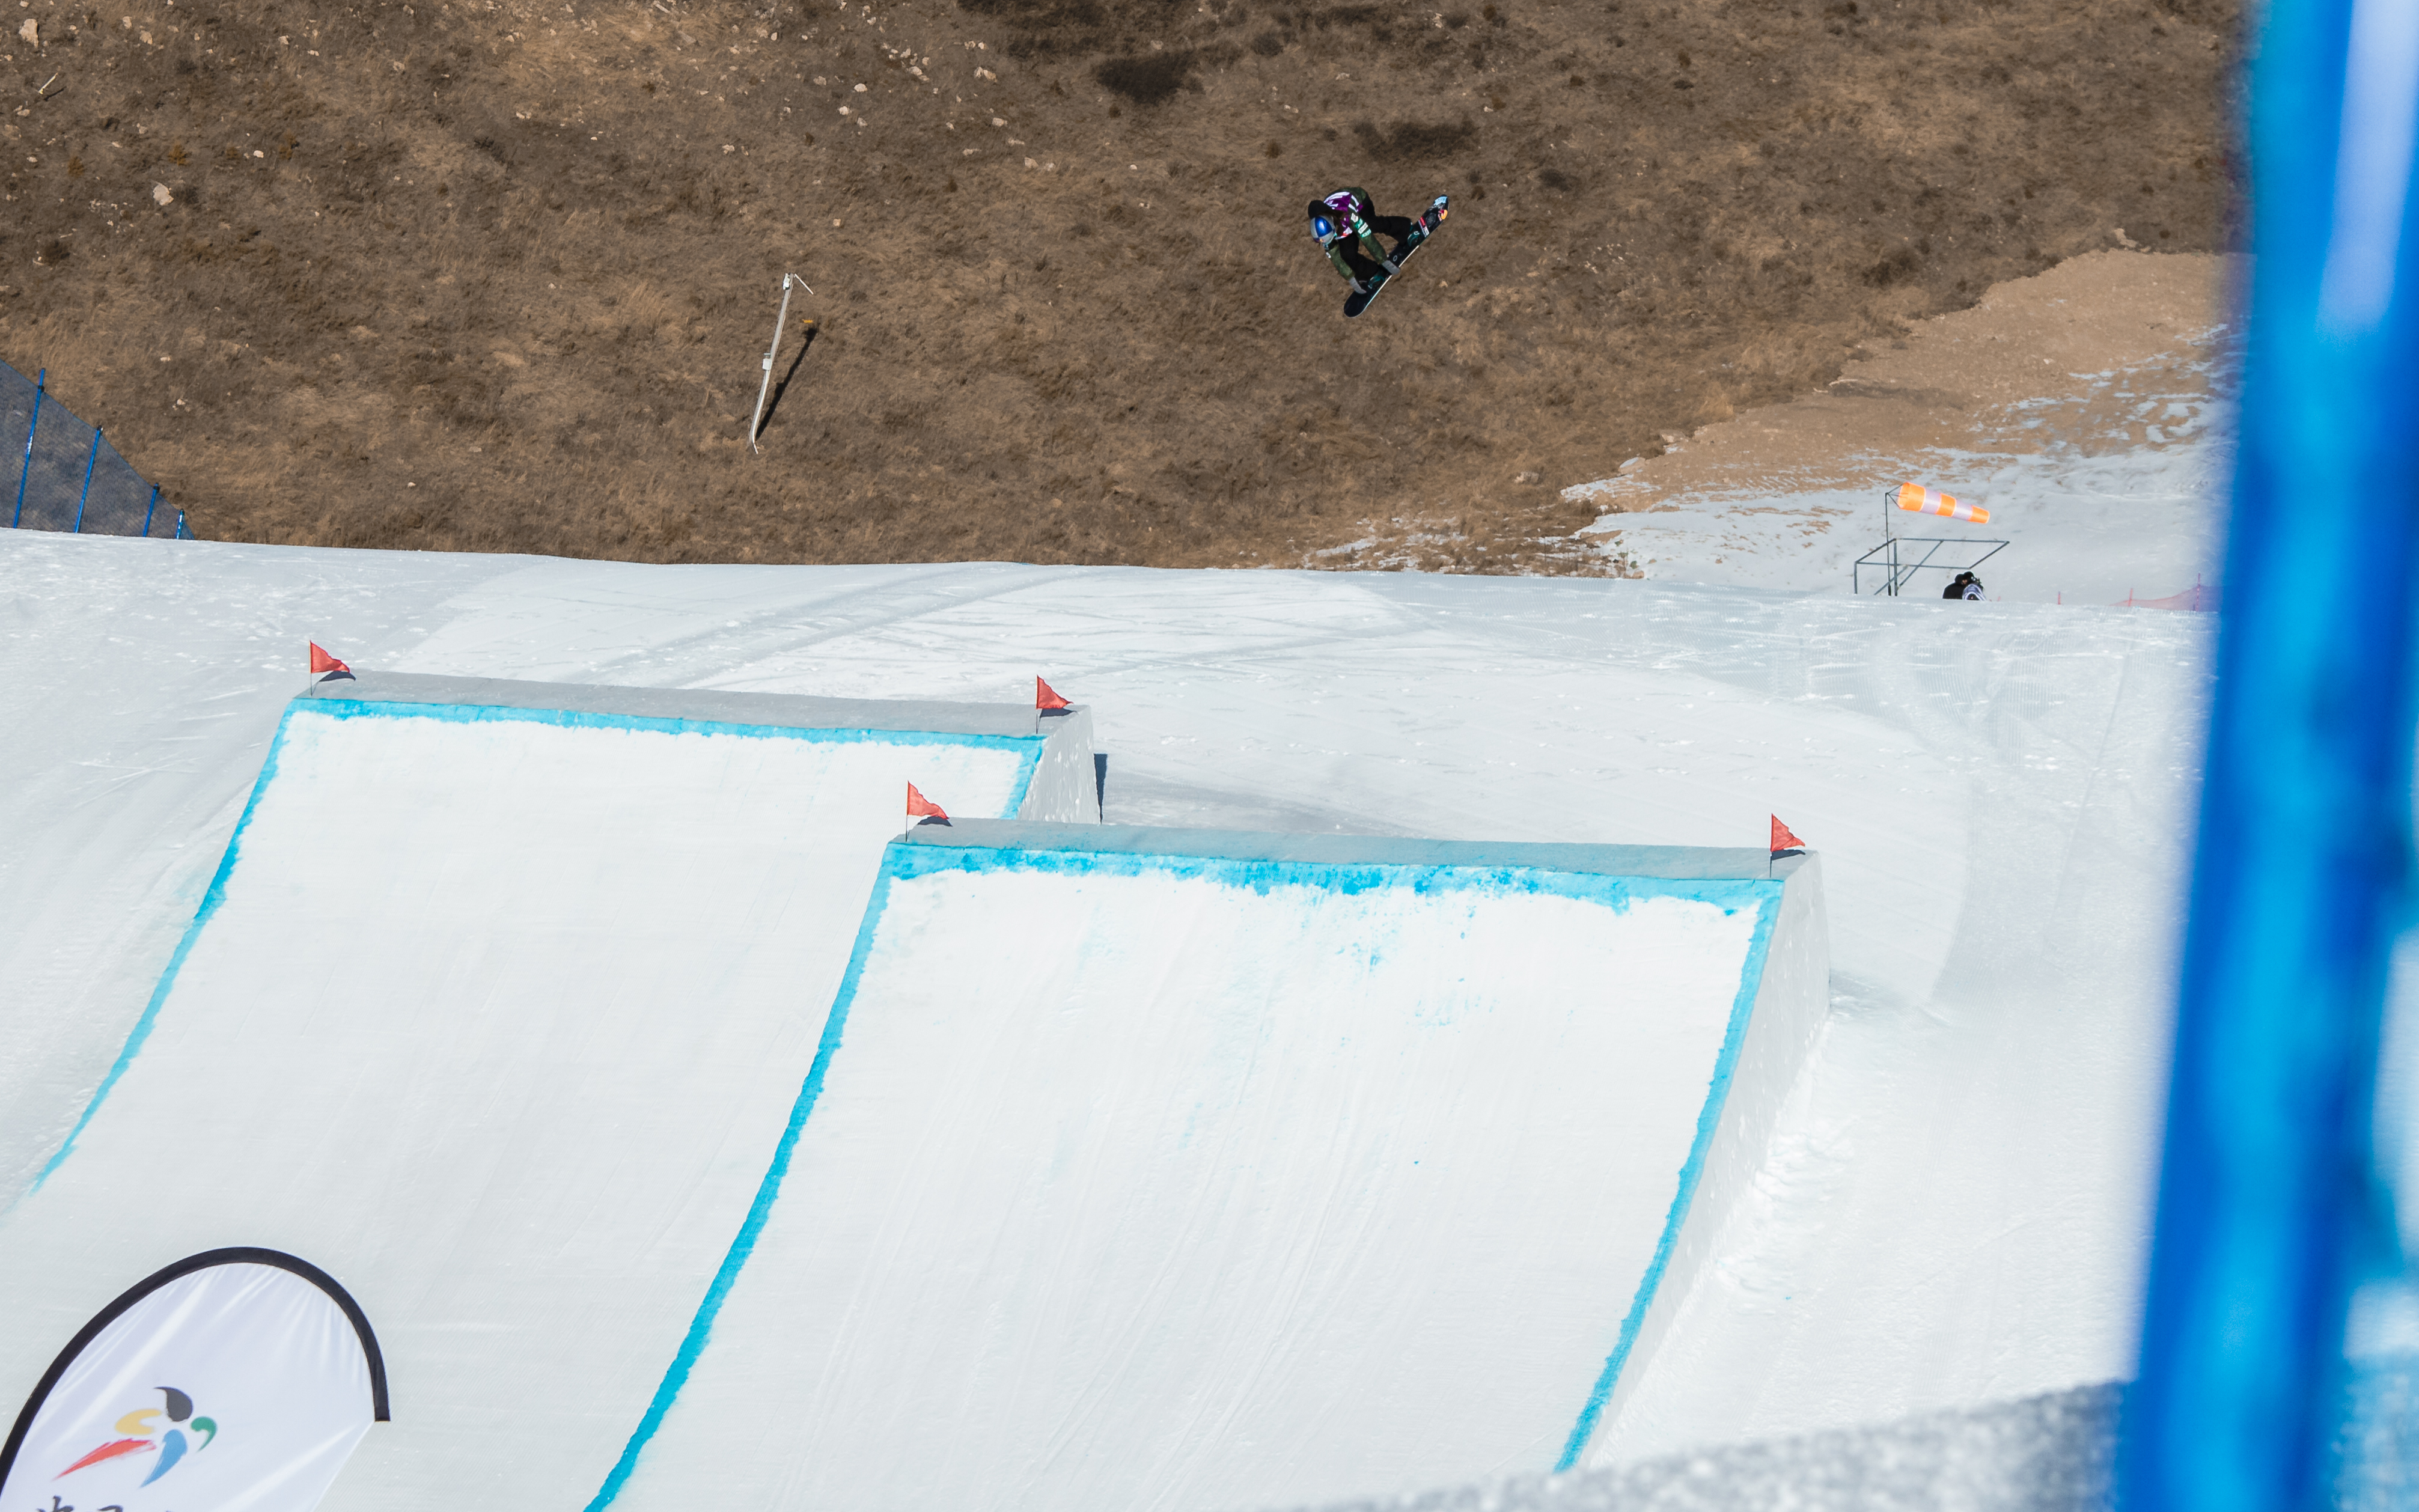 Miyabi Onitsuka cab-5 over the first kicker during the  FIS World Cup Secret Garden slopestyle event in China.